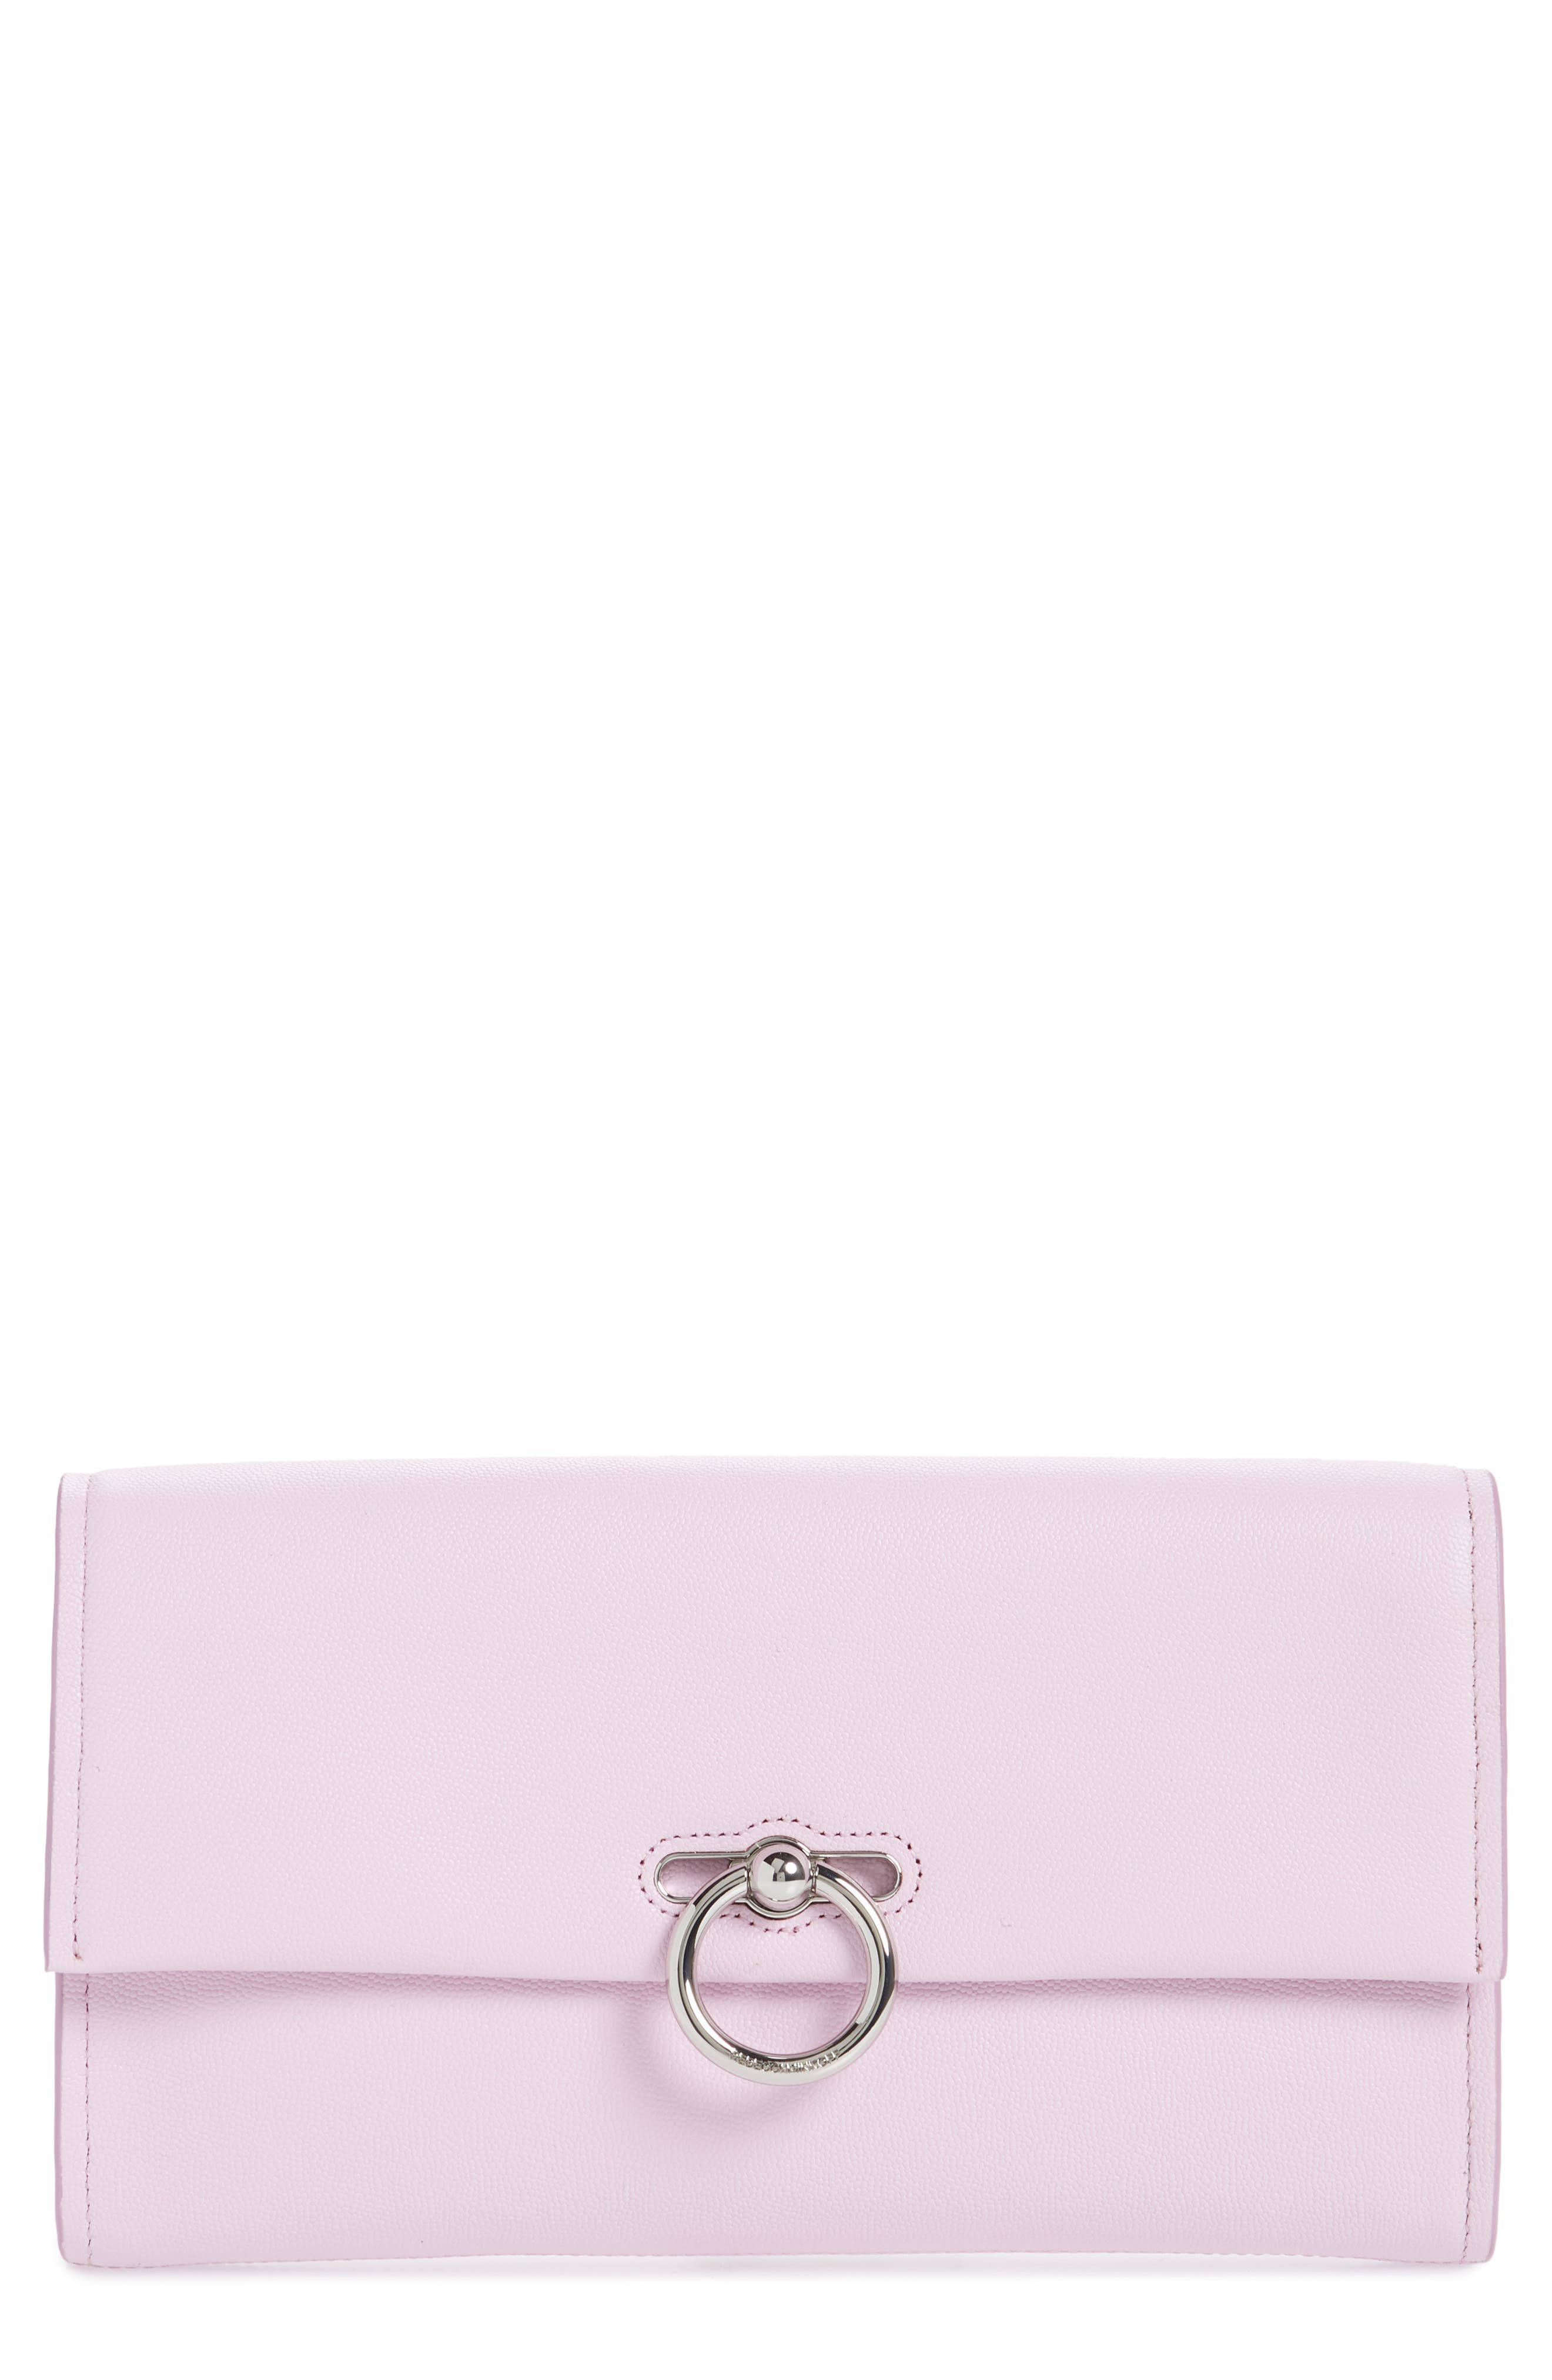 REBECCA MINKOFF, Jean Leather Clutch, Main thumbnail 1, color, LIGHT ORCHID